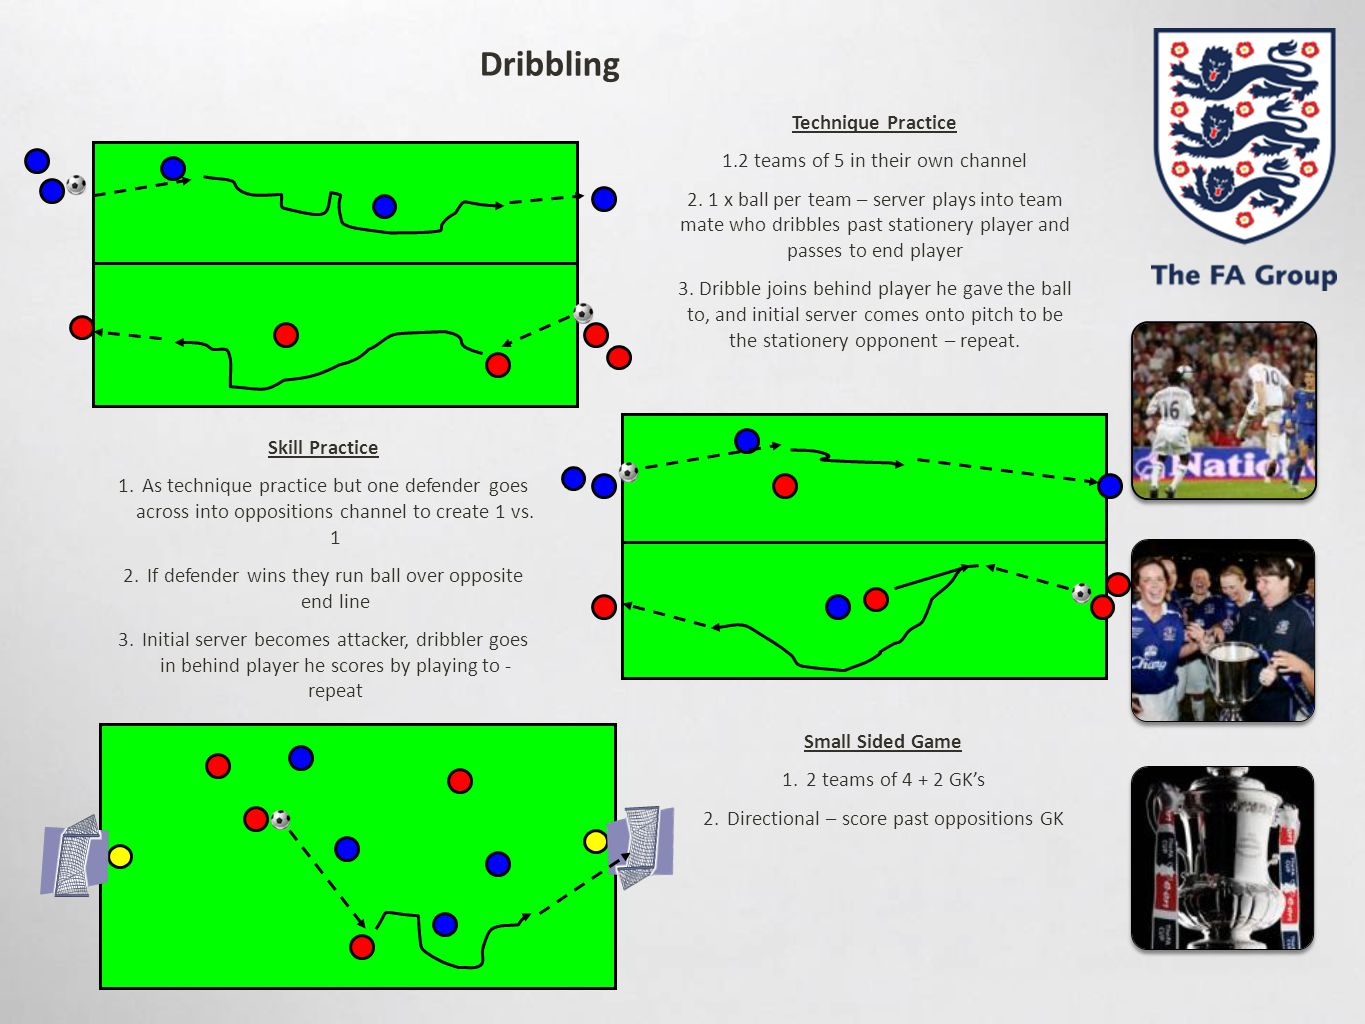 Dribbling Technique Practice 1.2 teams of 5 in their own channel